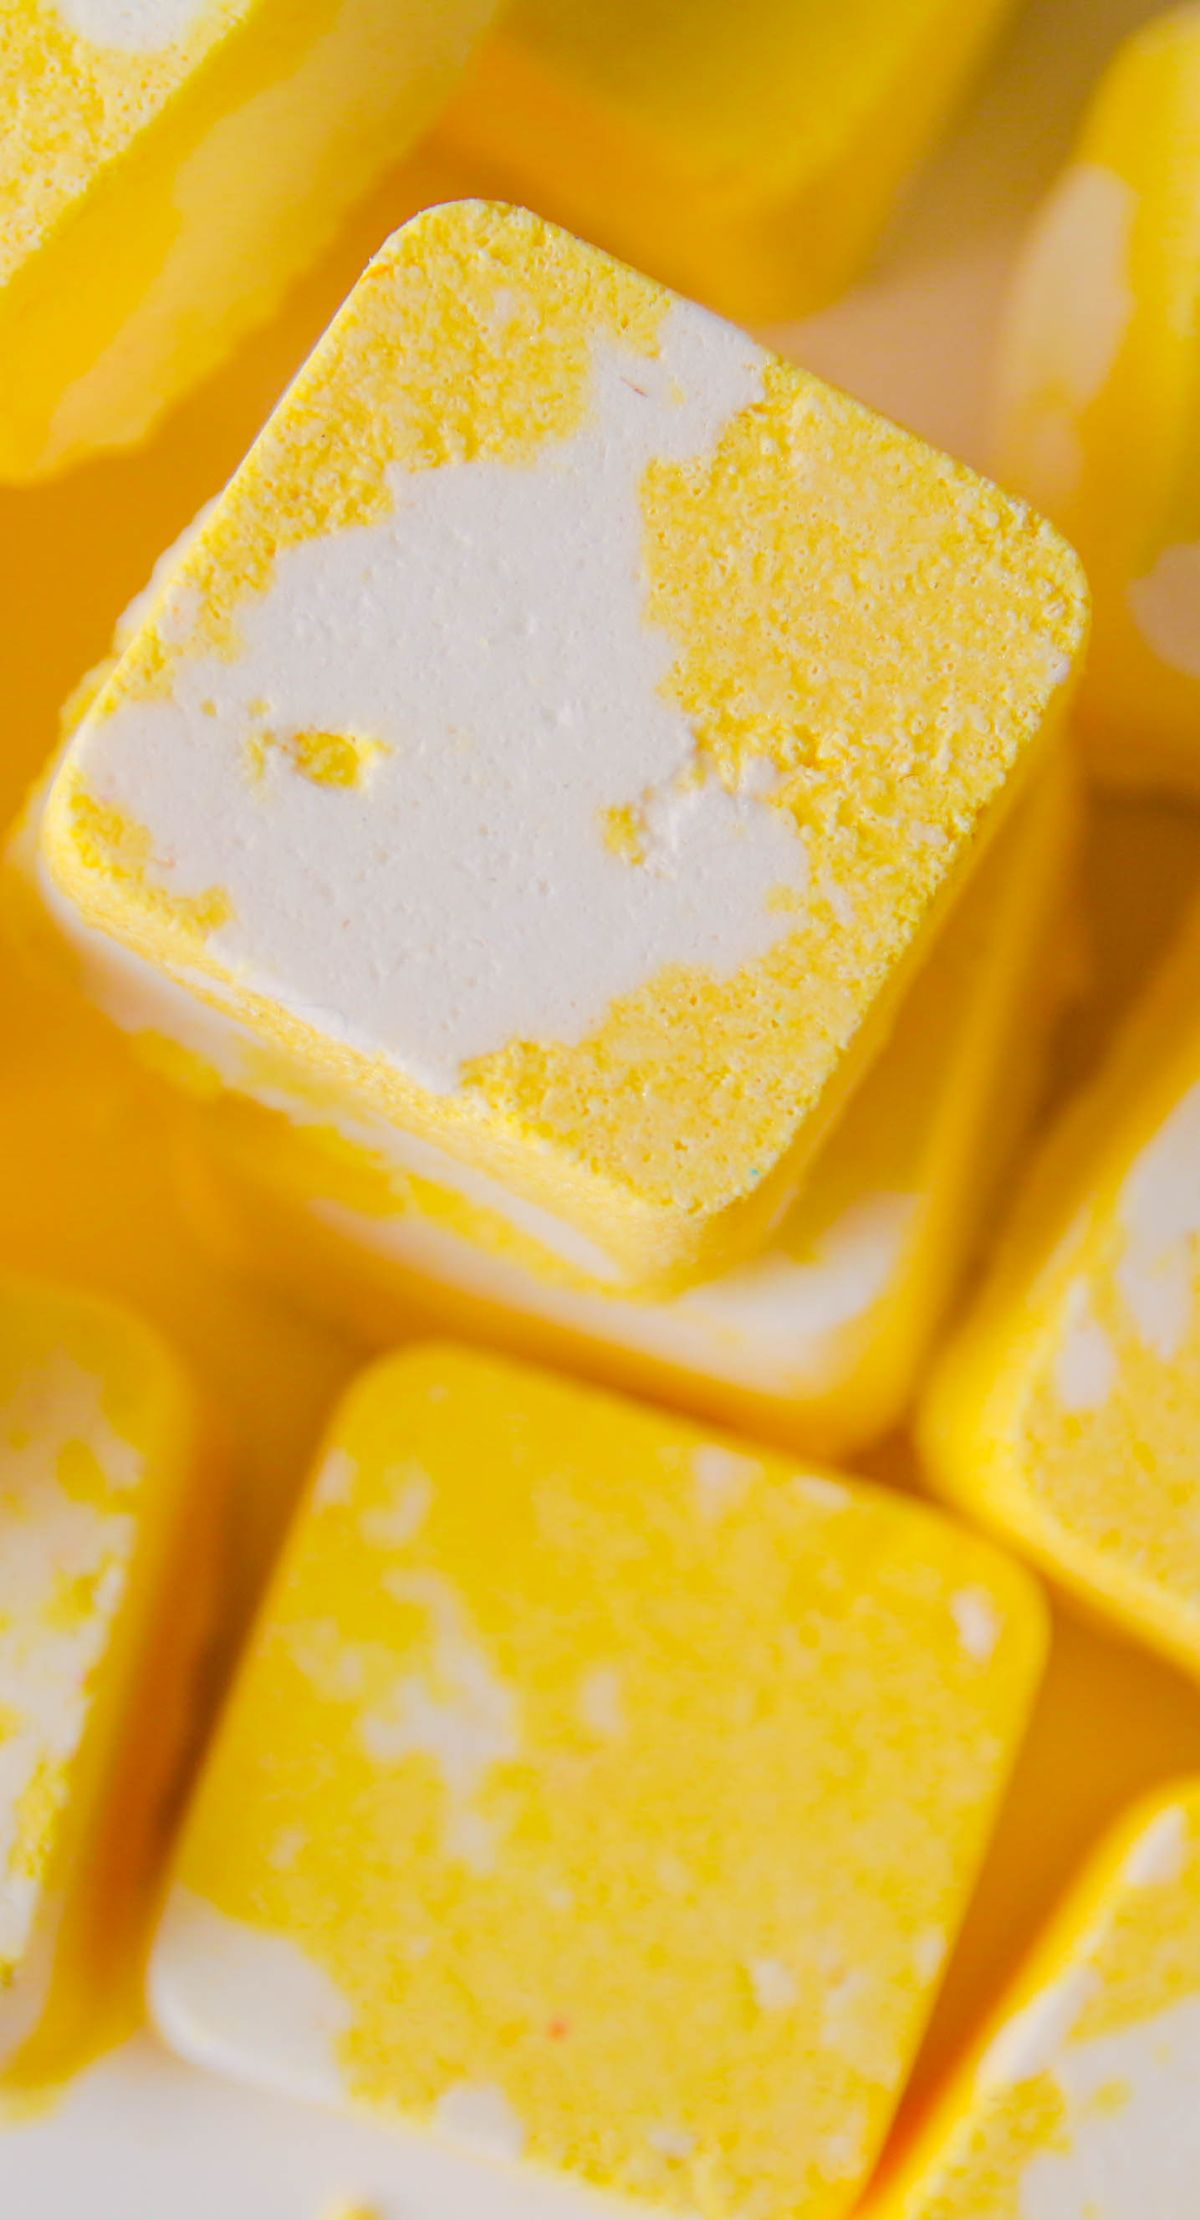 Make even the speediest shower feel indulgent with these easy-to-make lemon shower melts. Just 4 ingredients needed! savy naturalista